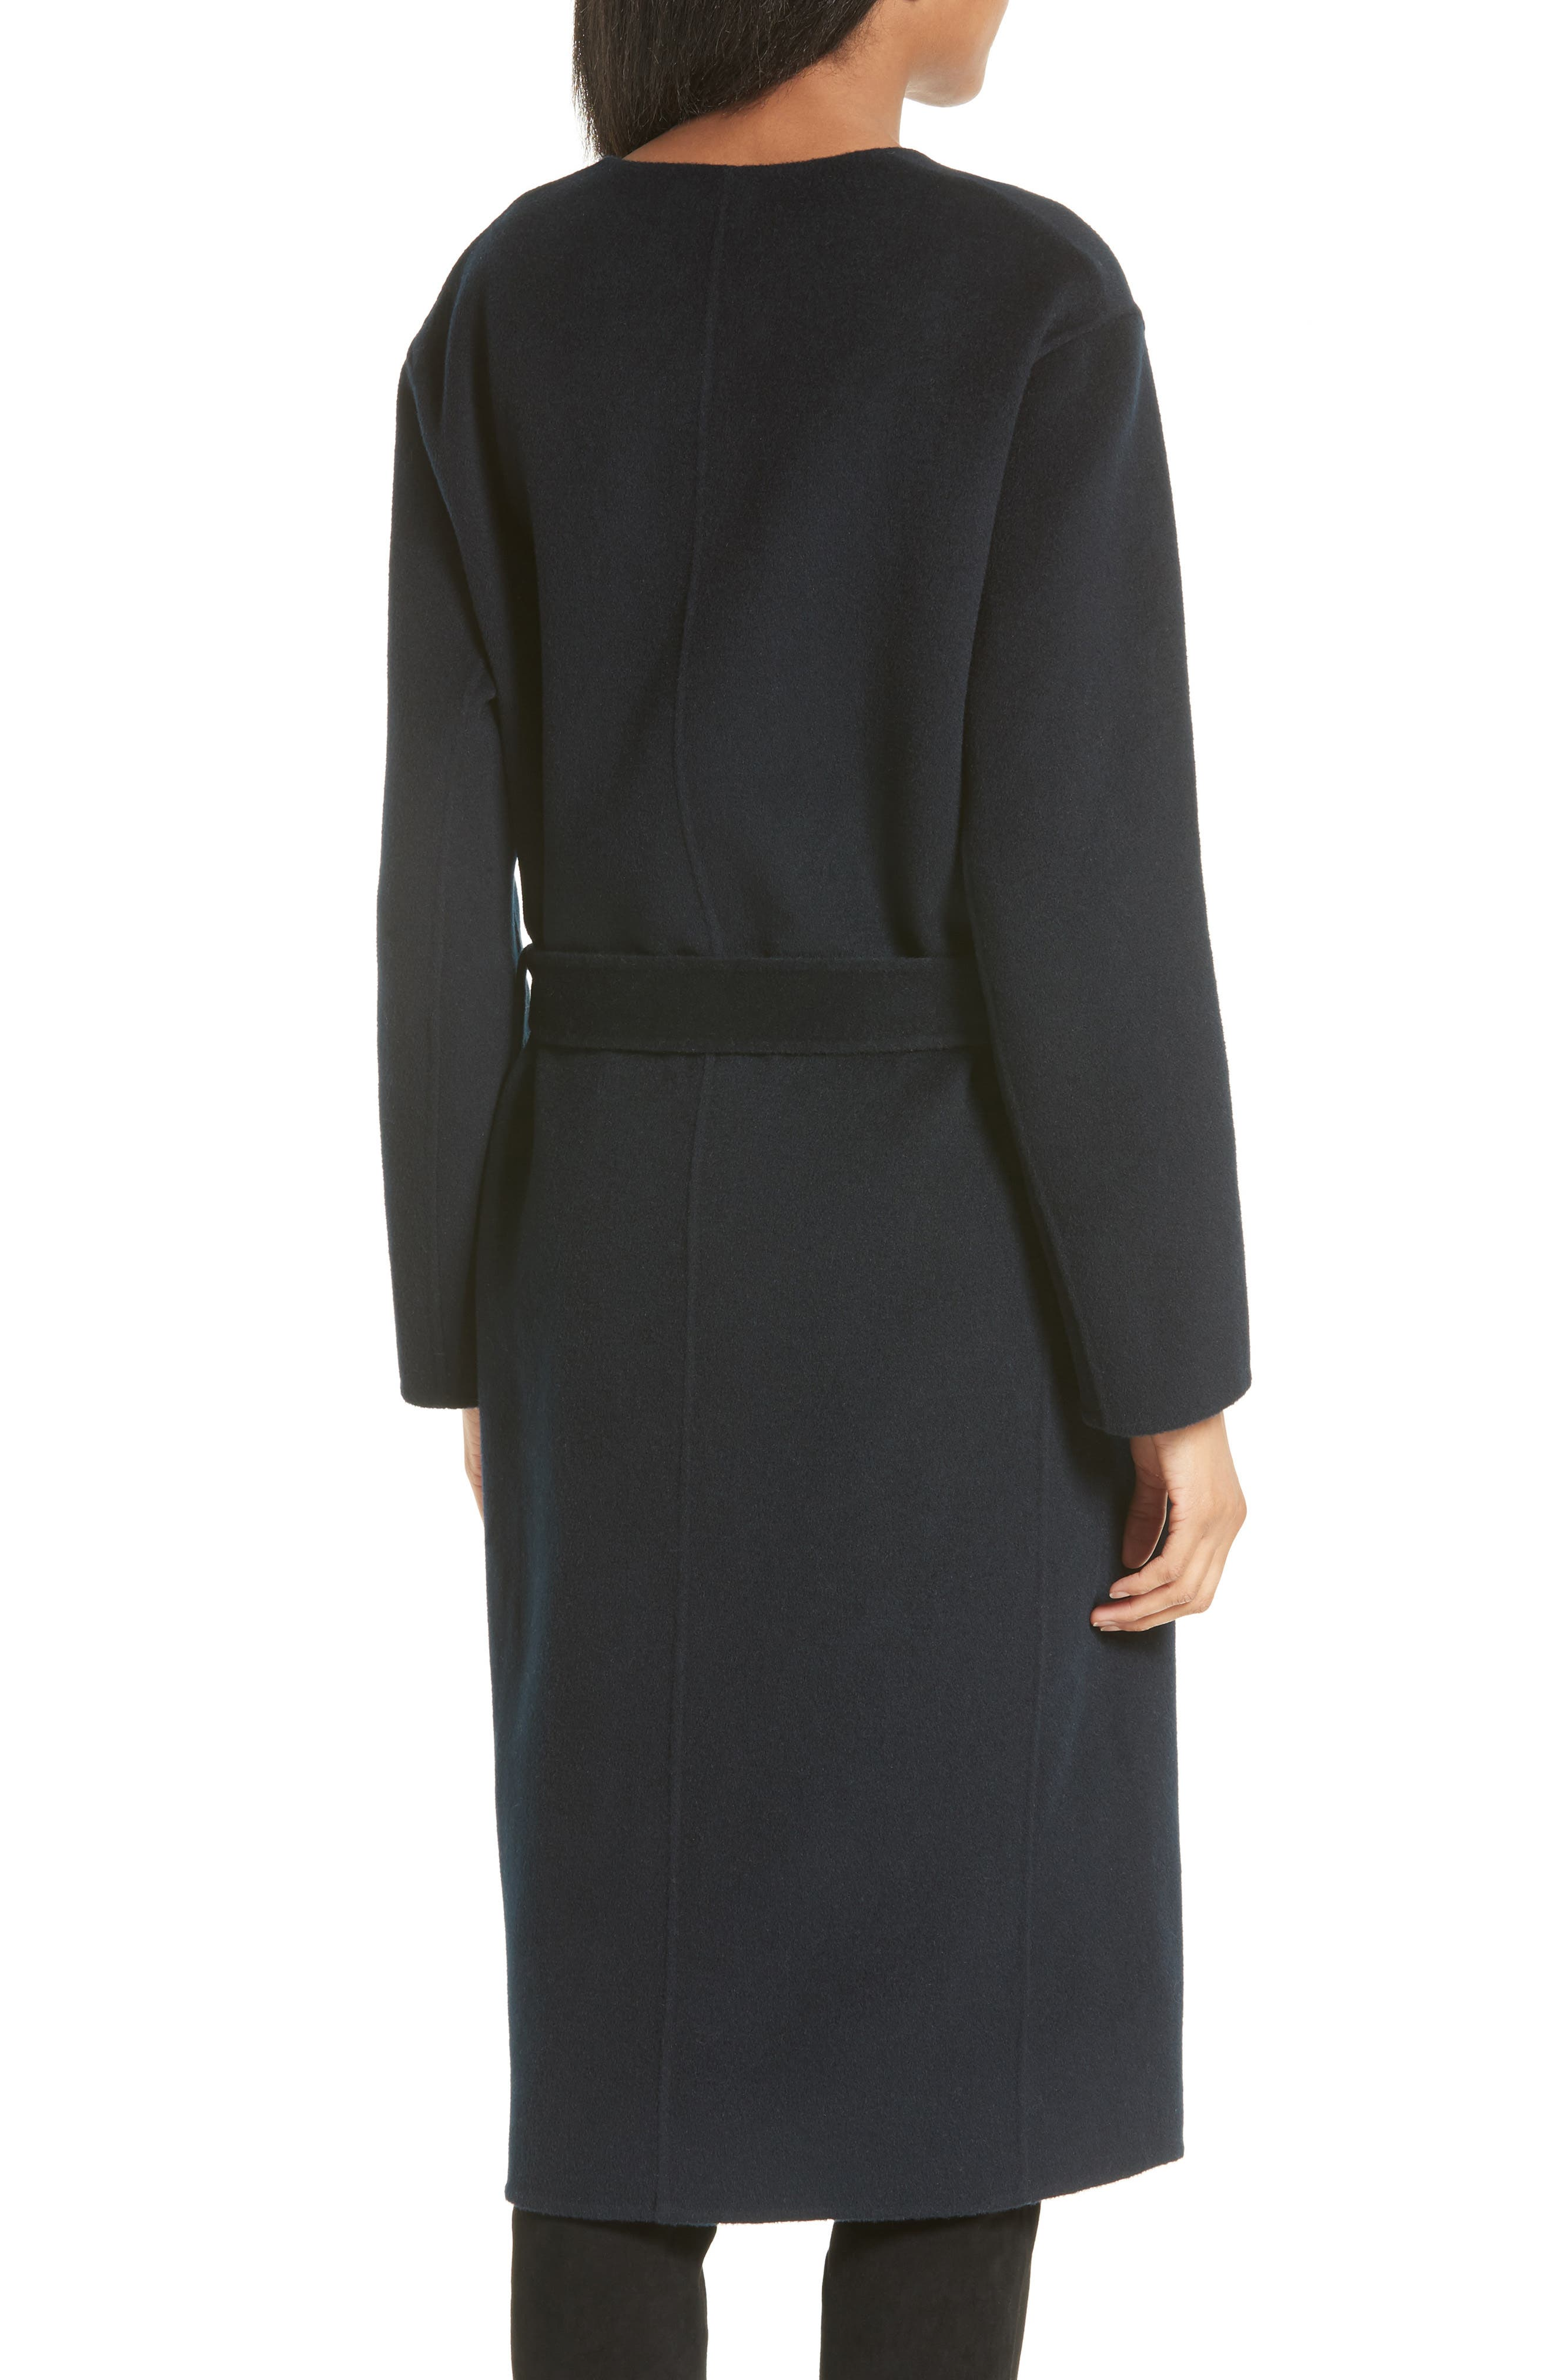 Reversible Wool & Cashmere Belted Coat,                             Alternate thumbnail 3, color,                             464